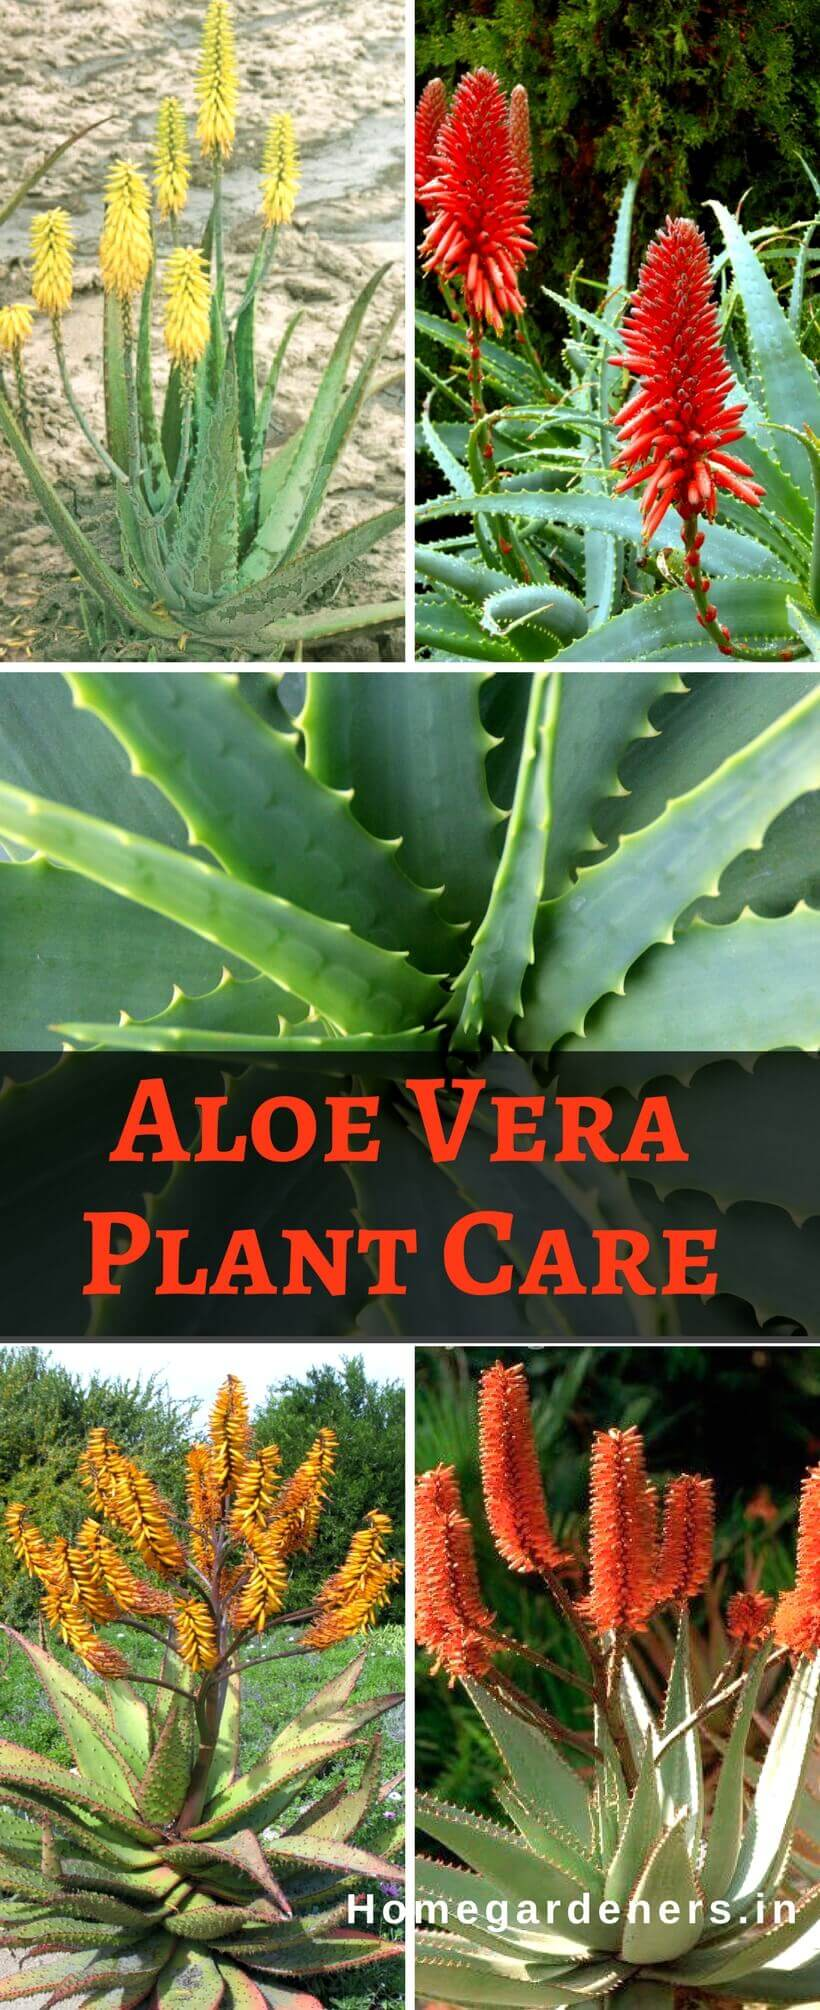 Aloe Vera Plant Care - Best ways to Care Aloe Vera at Home